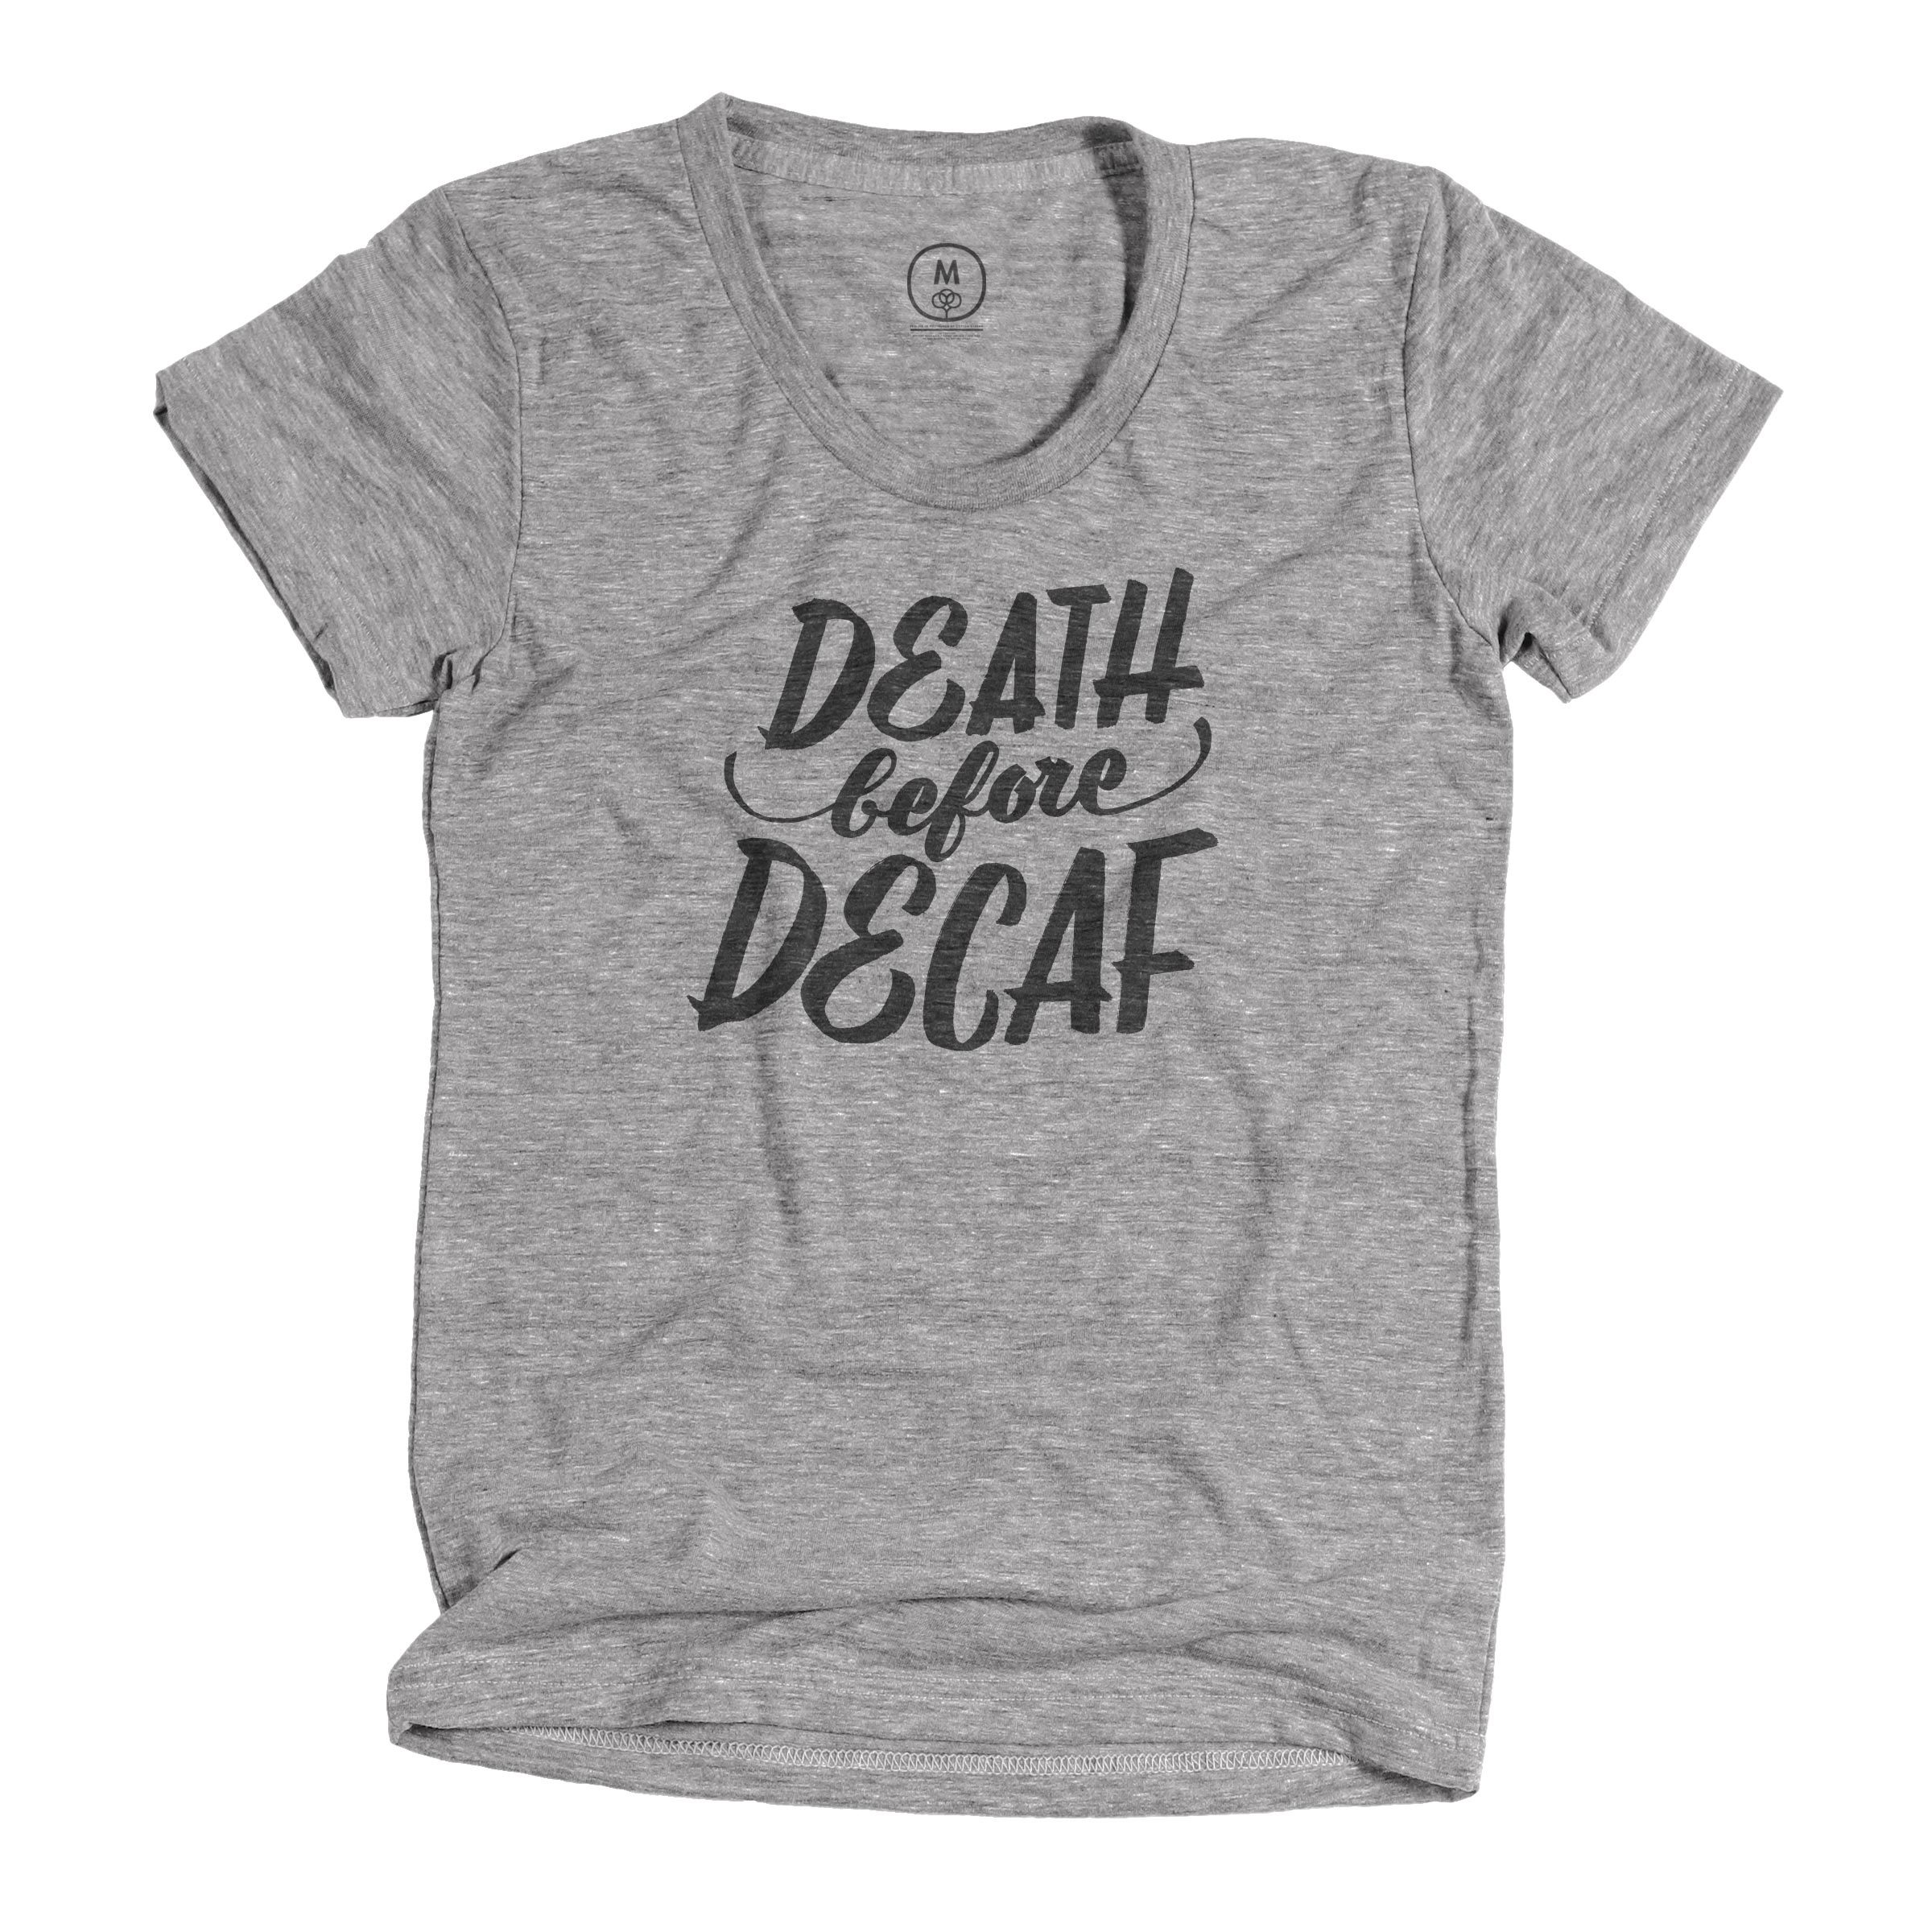 Oh, dang! Guess who's back? Only the softest, coolest coffee shirt EVER. Click through to get yours!